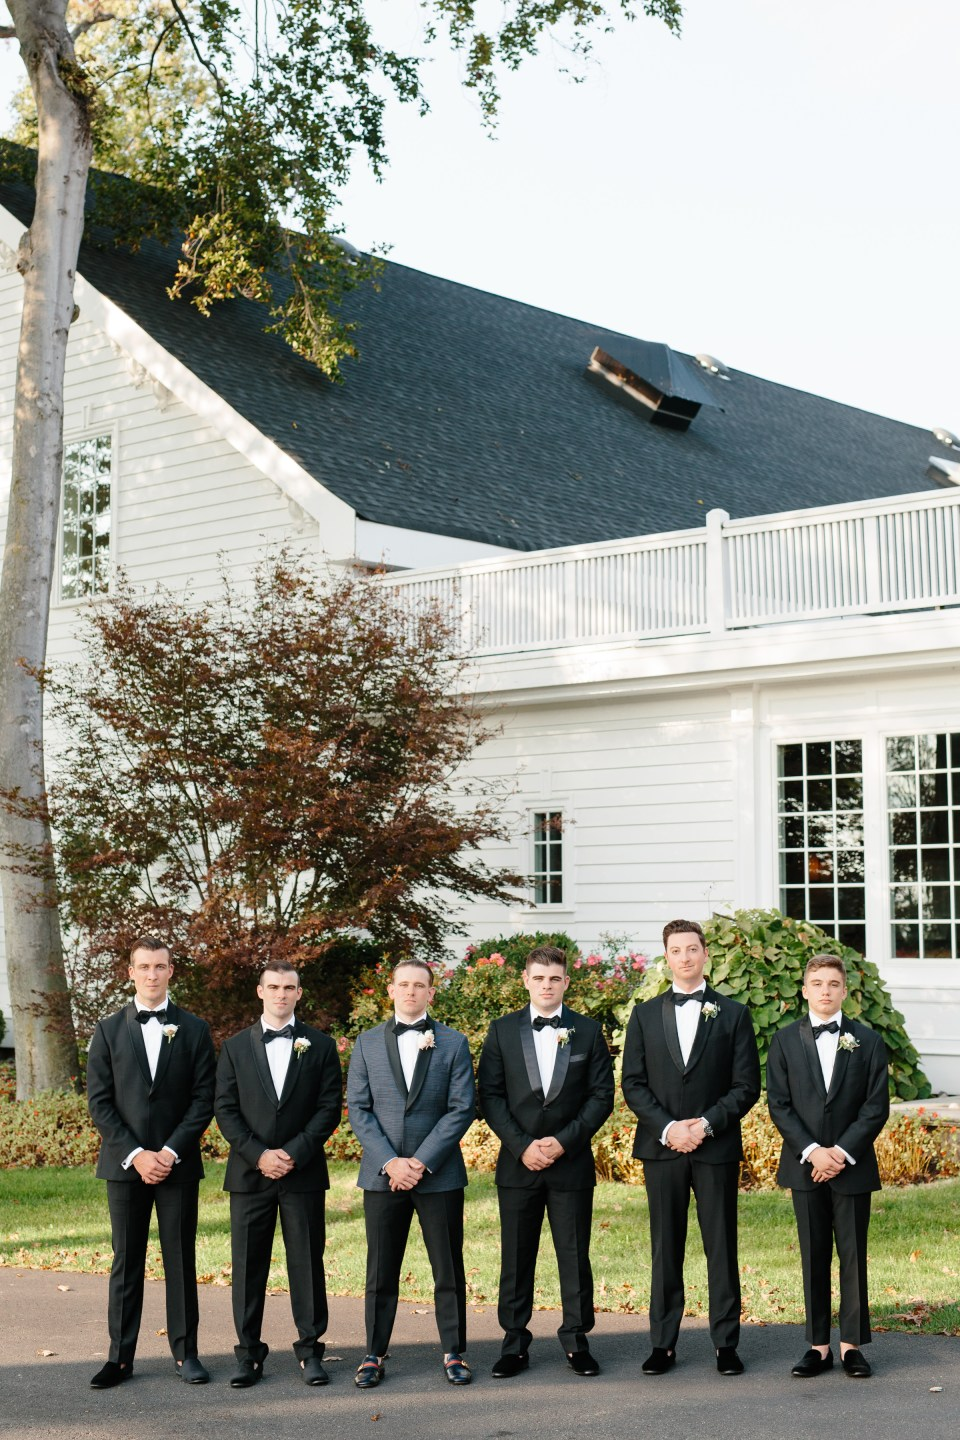 Ashley Mac Photographs photographs groomsmen at Ryland Inn